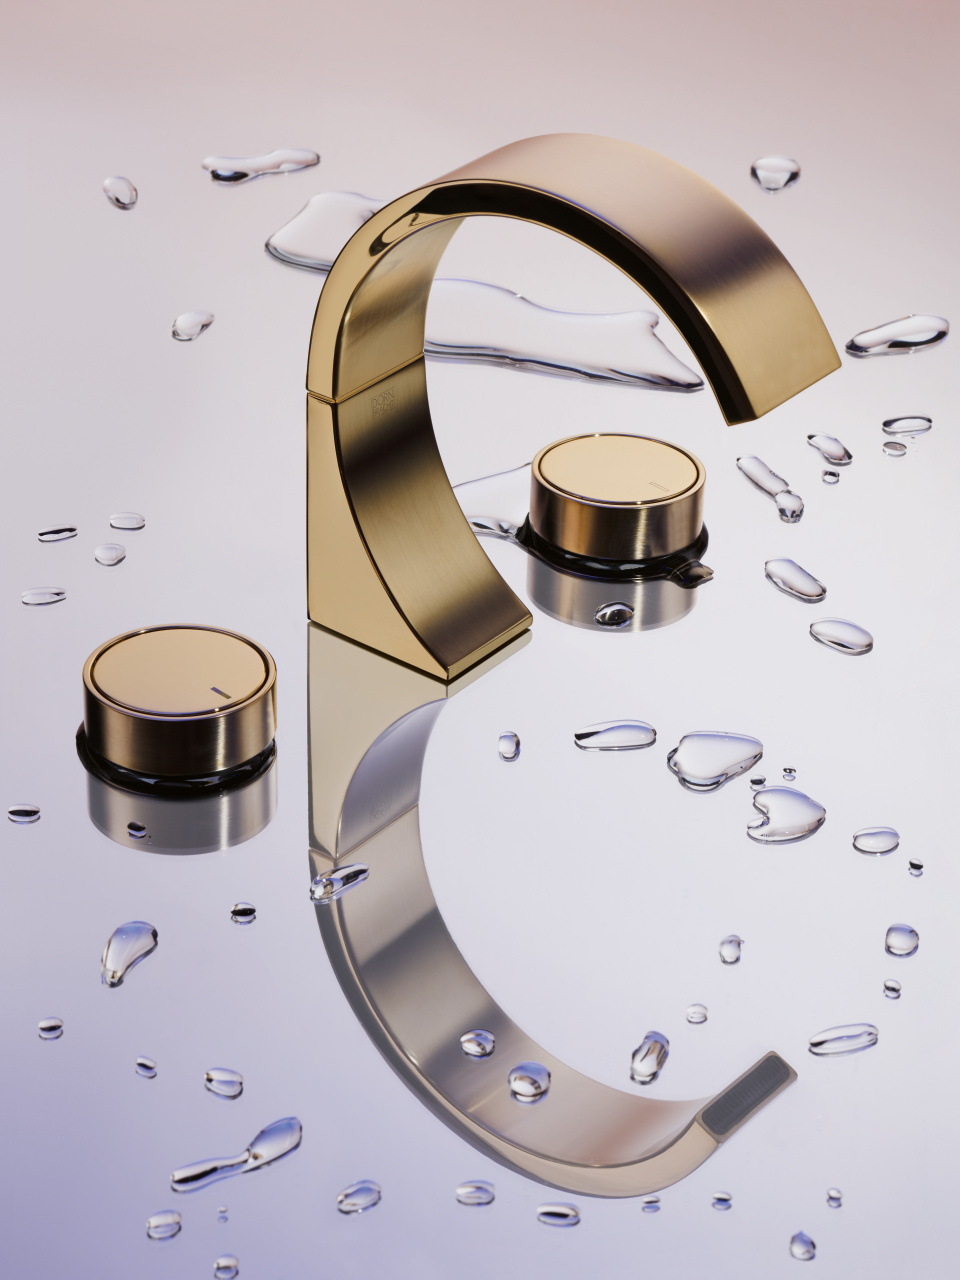 Gold brass Dornbracht faucet CYO collection with drops of water and gold knobs